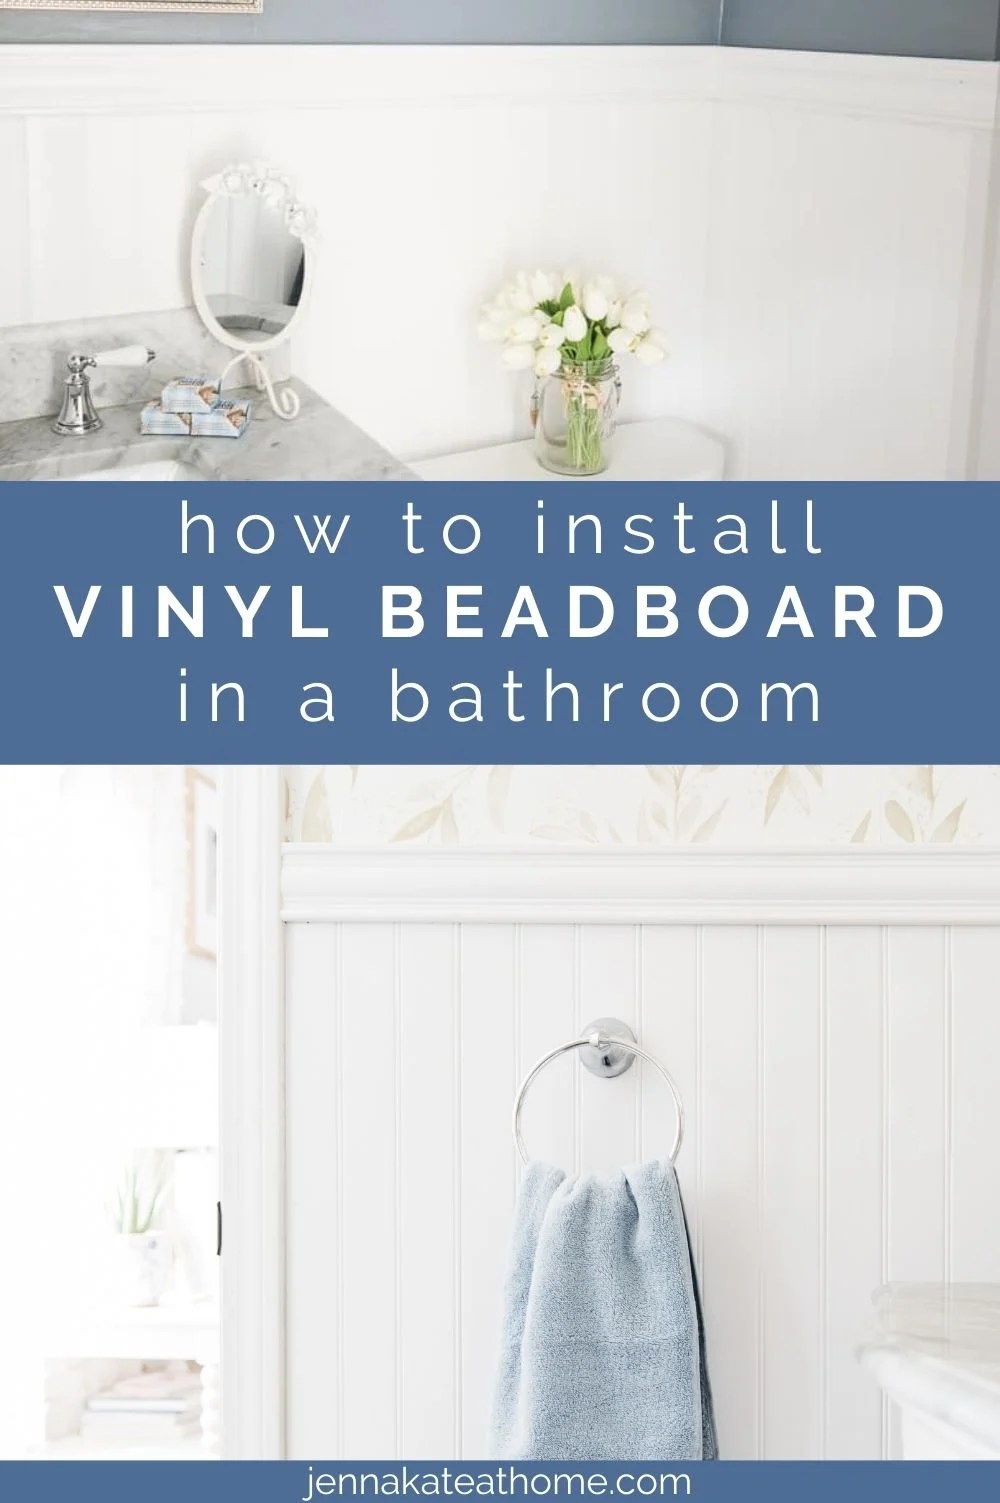 how to install beadboard in a bathroom pin image